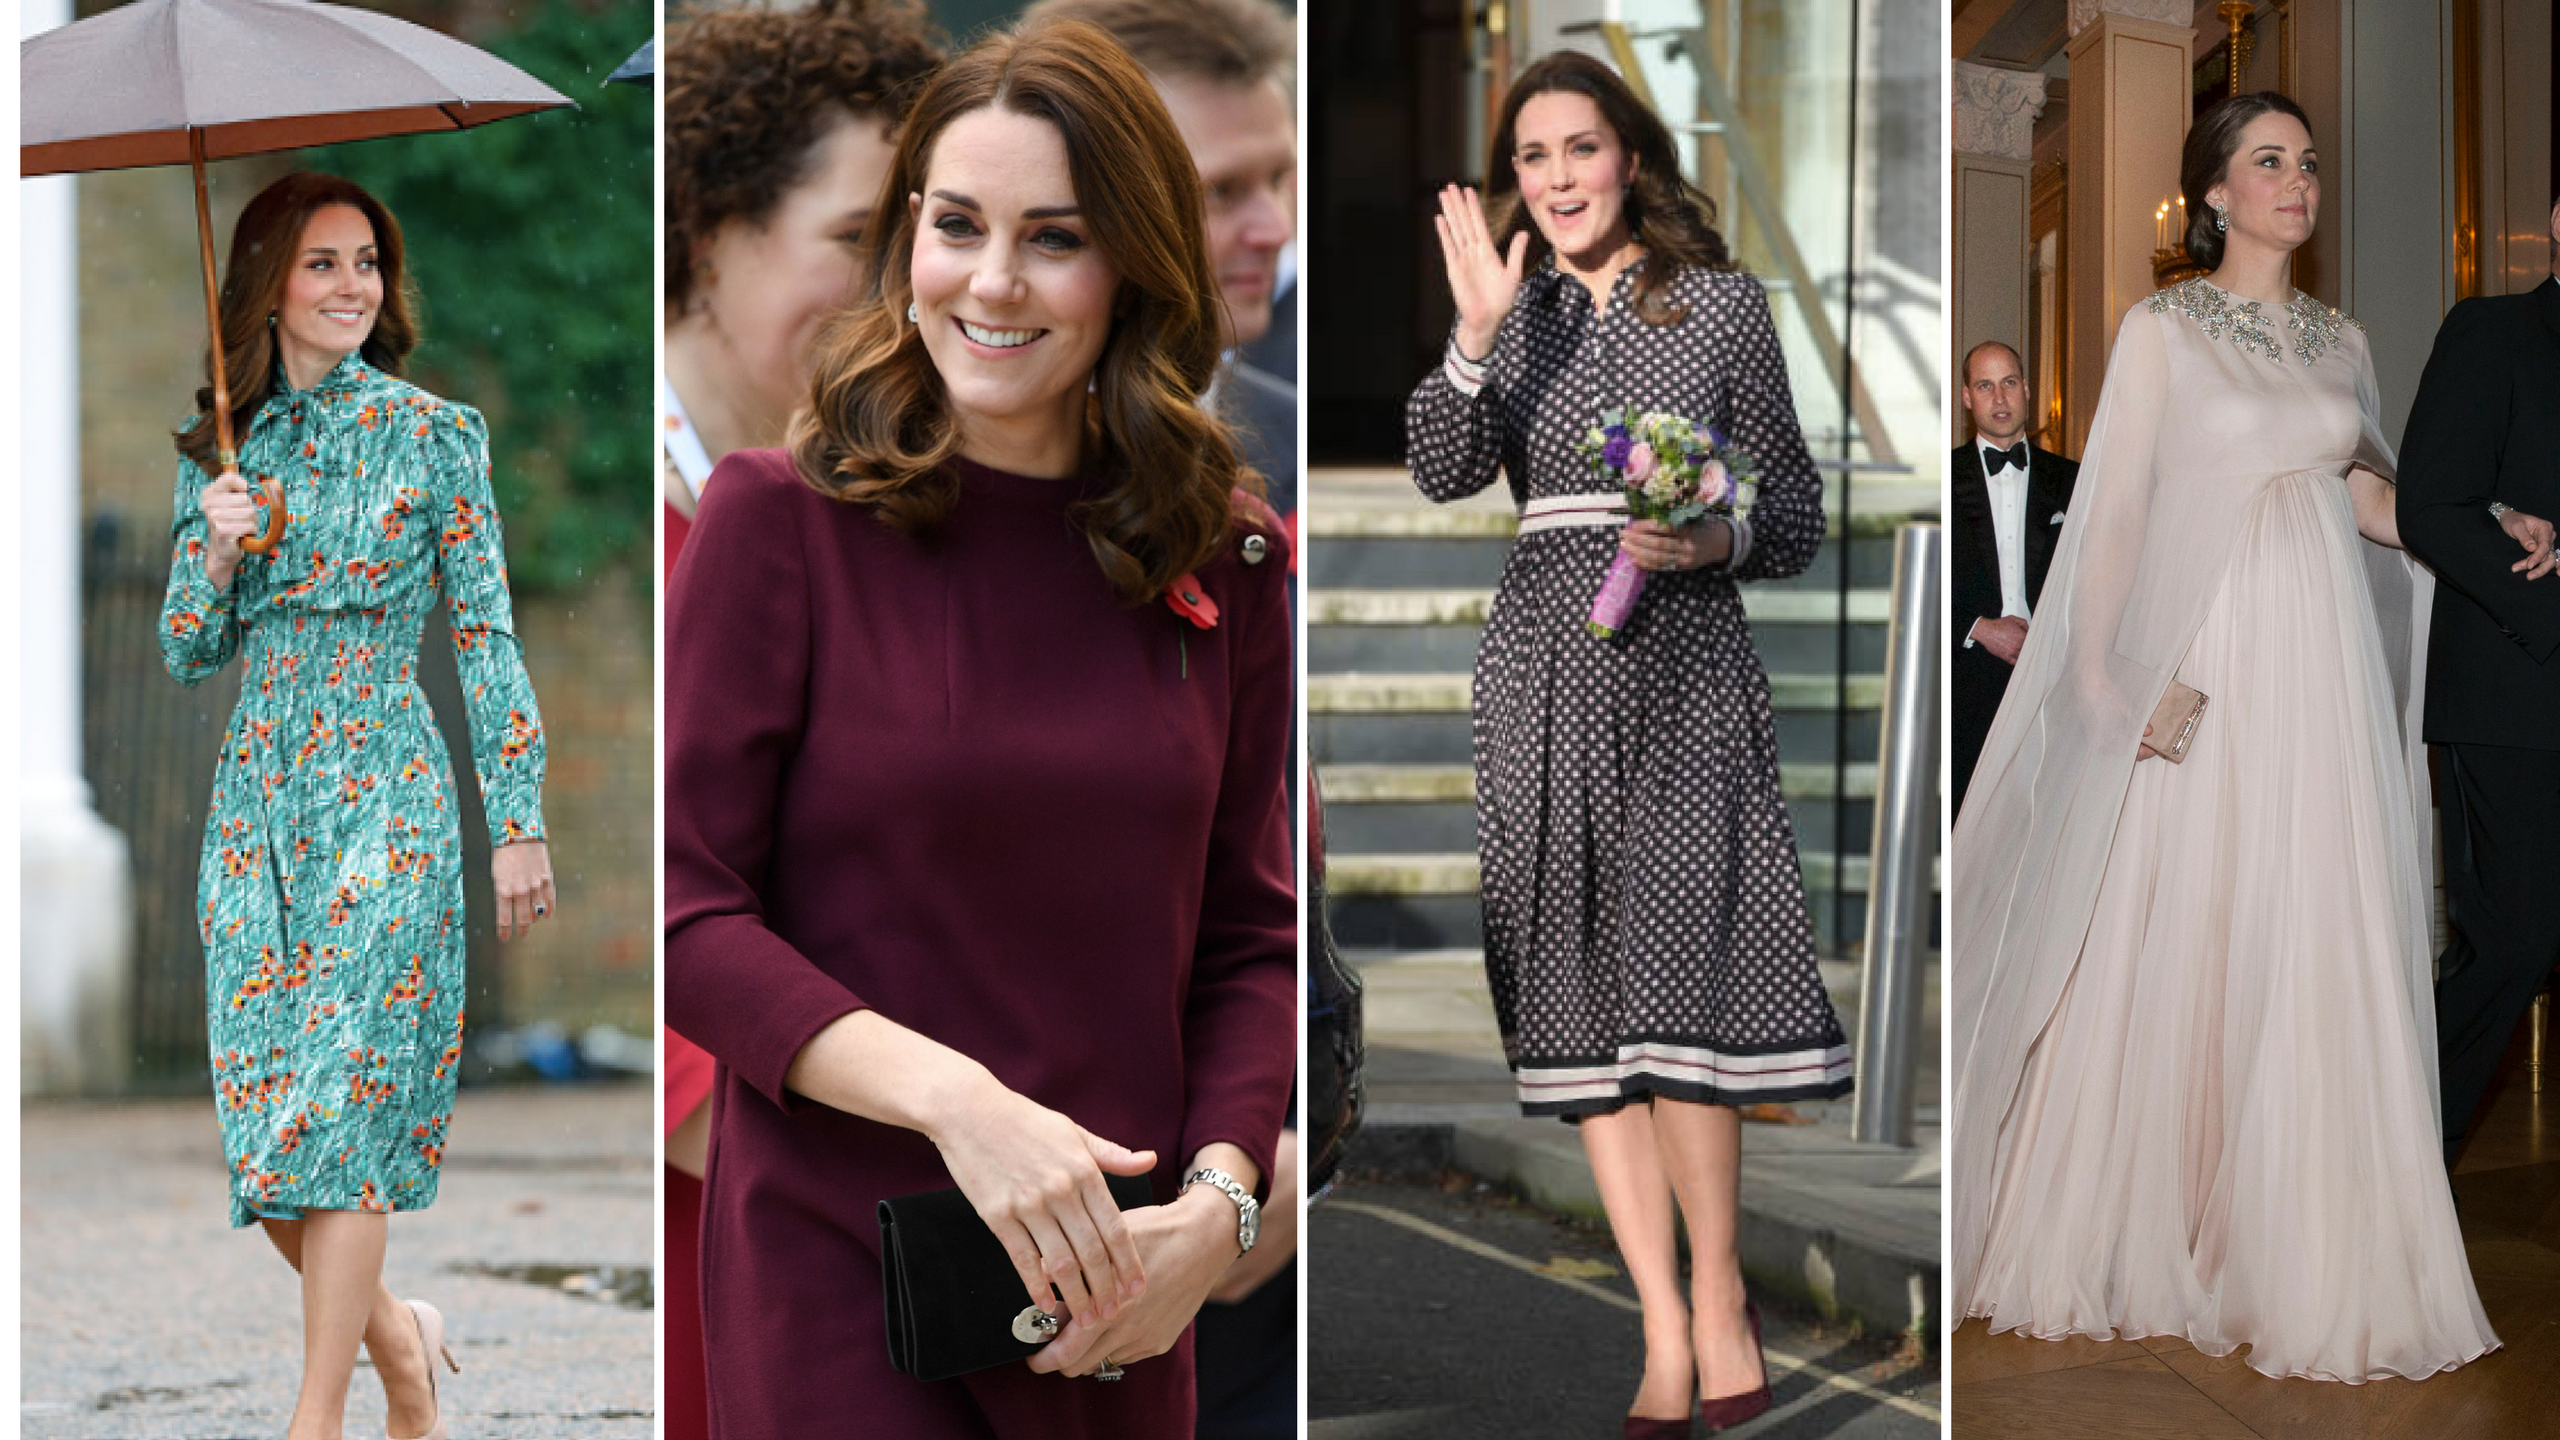 afd225c599fb8 Our top 8 maternity dresses seen on The Duchess of Cambridge ...